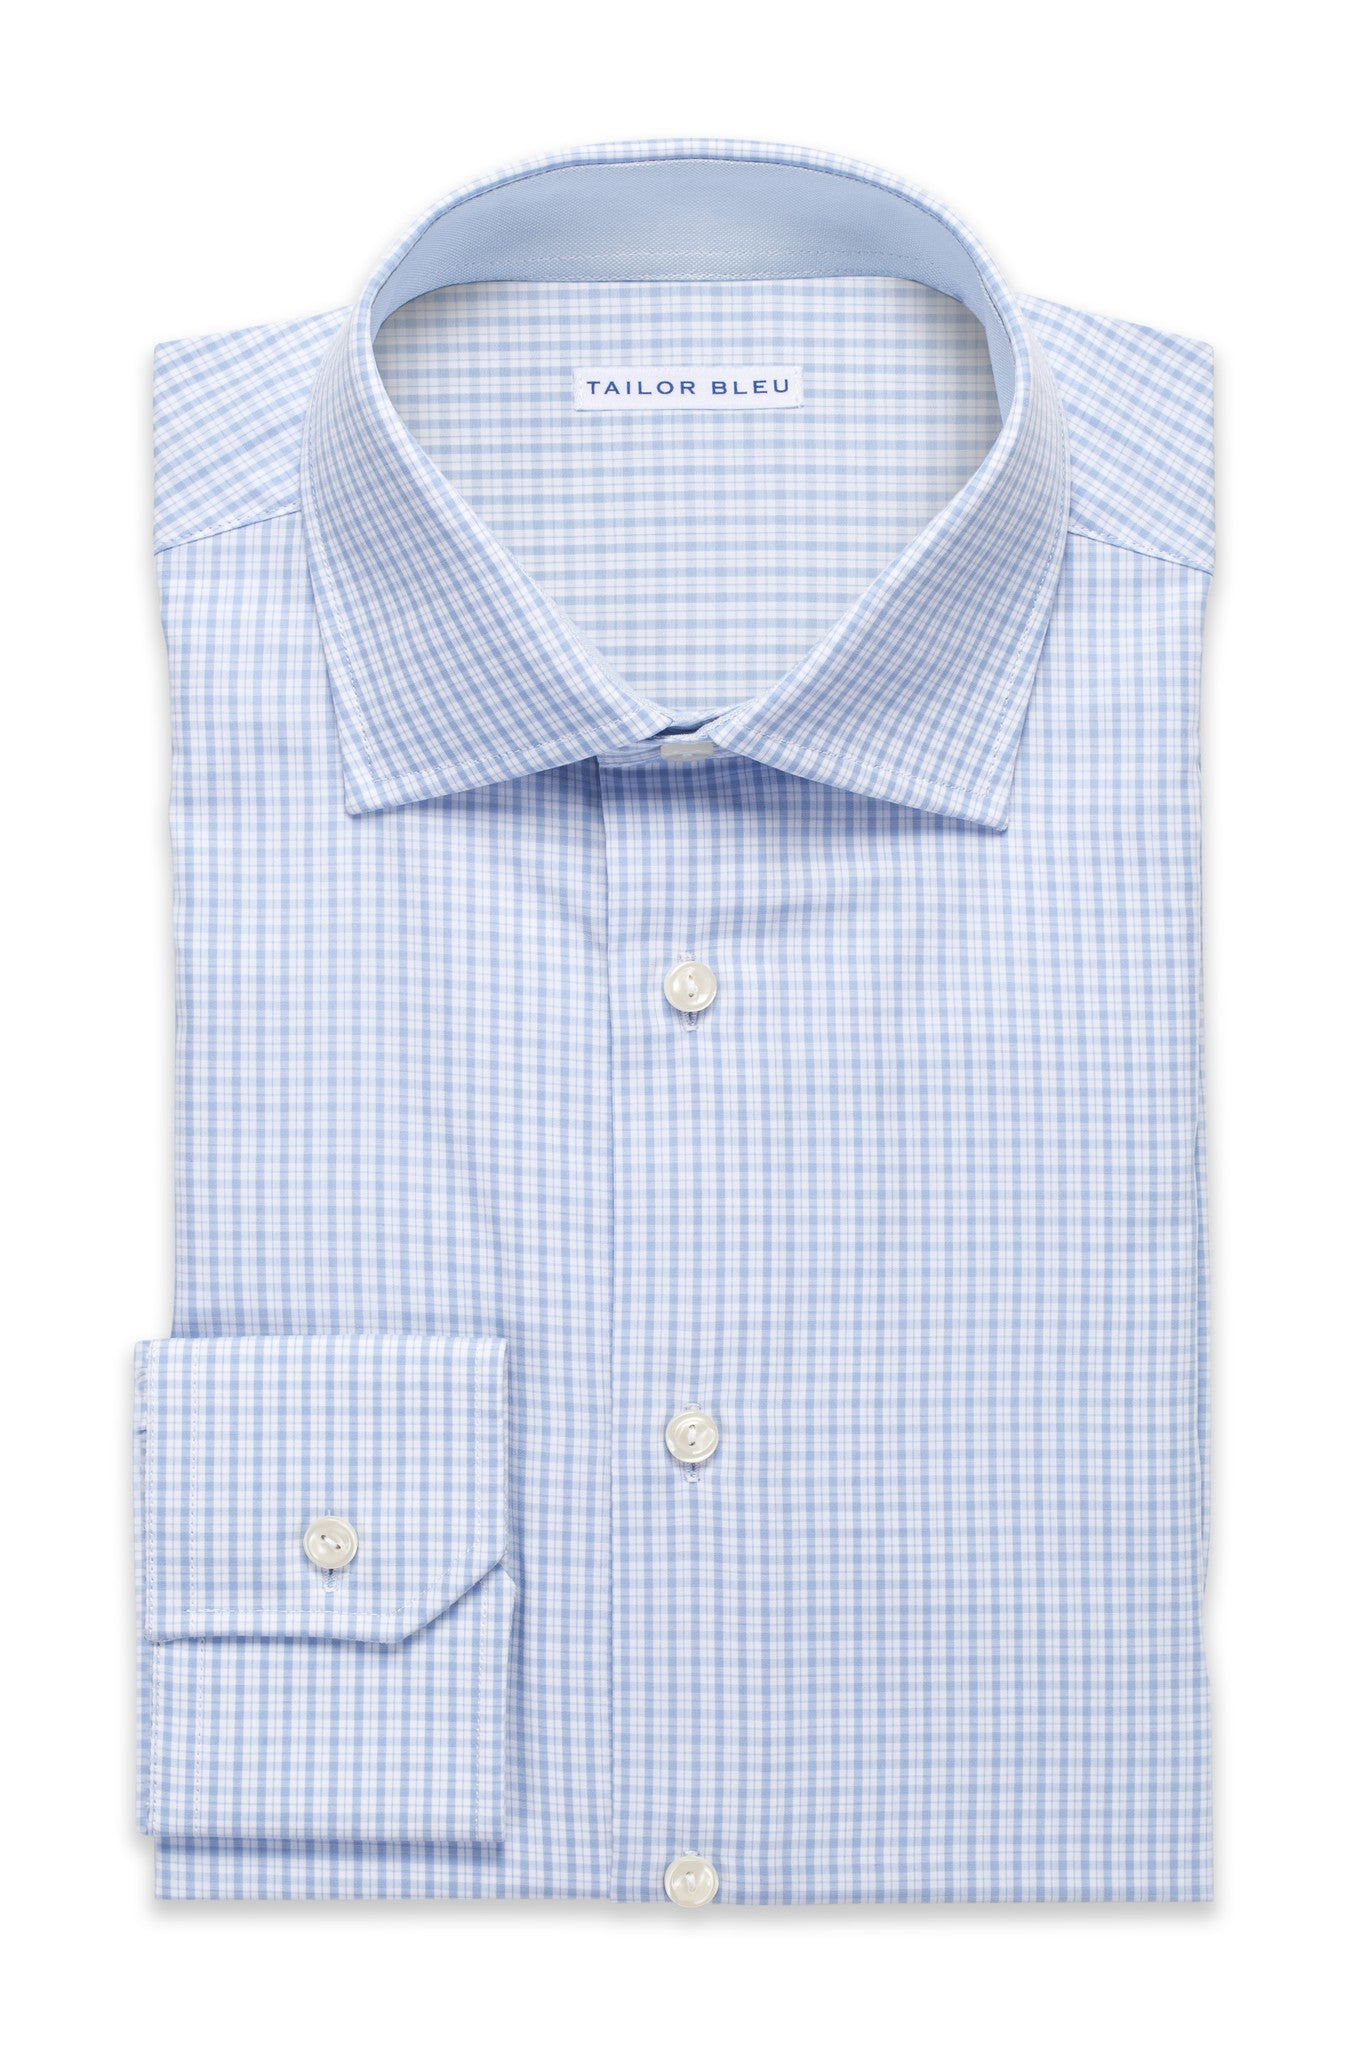 Mini-Plaid Shirt - Round Spread Collar- Light Blue